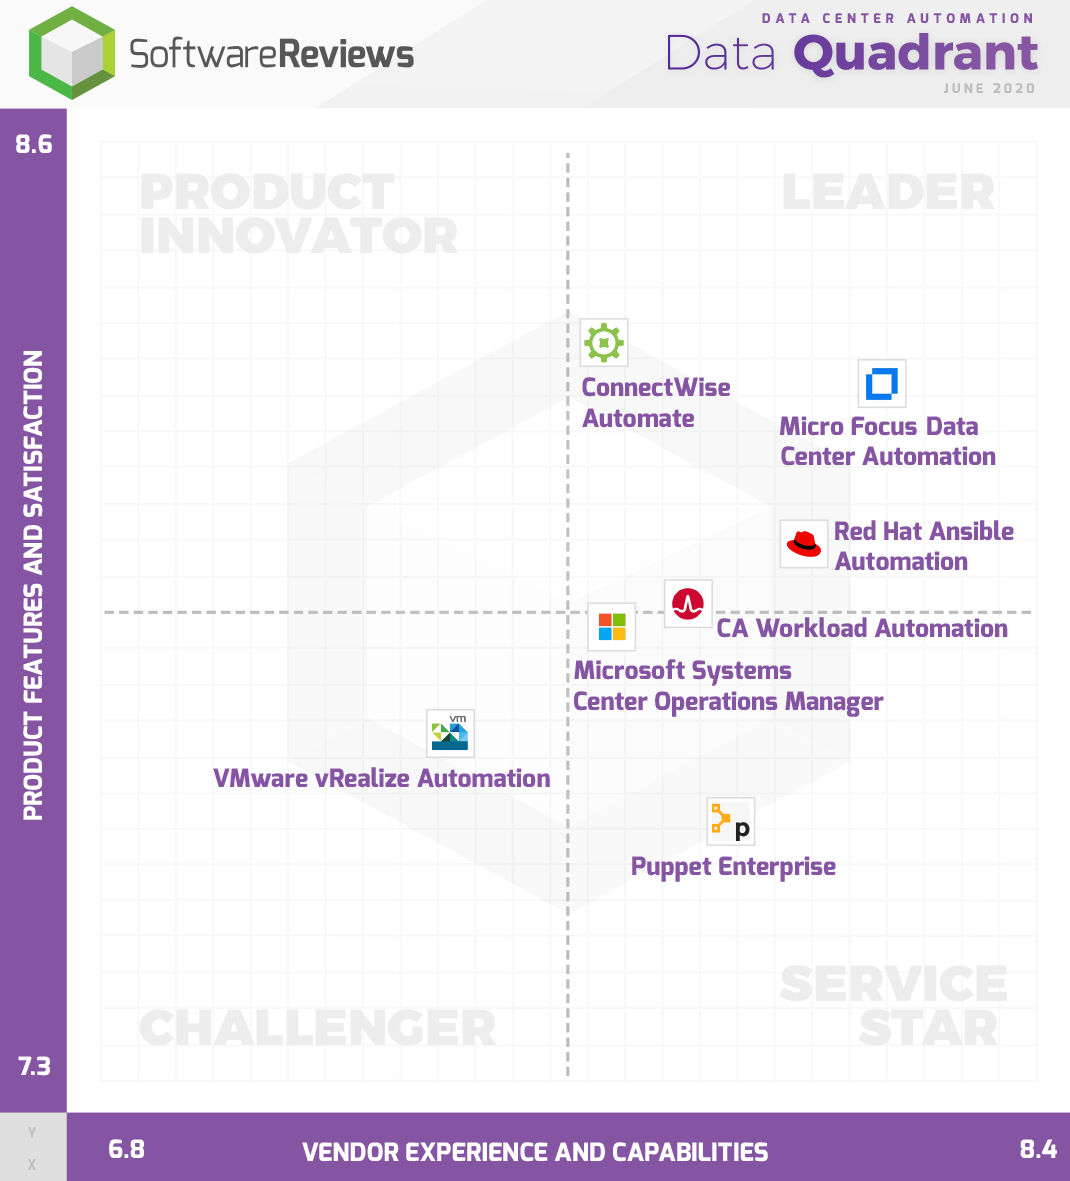 Data Center Automation Data Quadrant